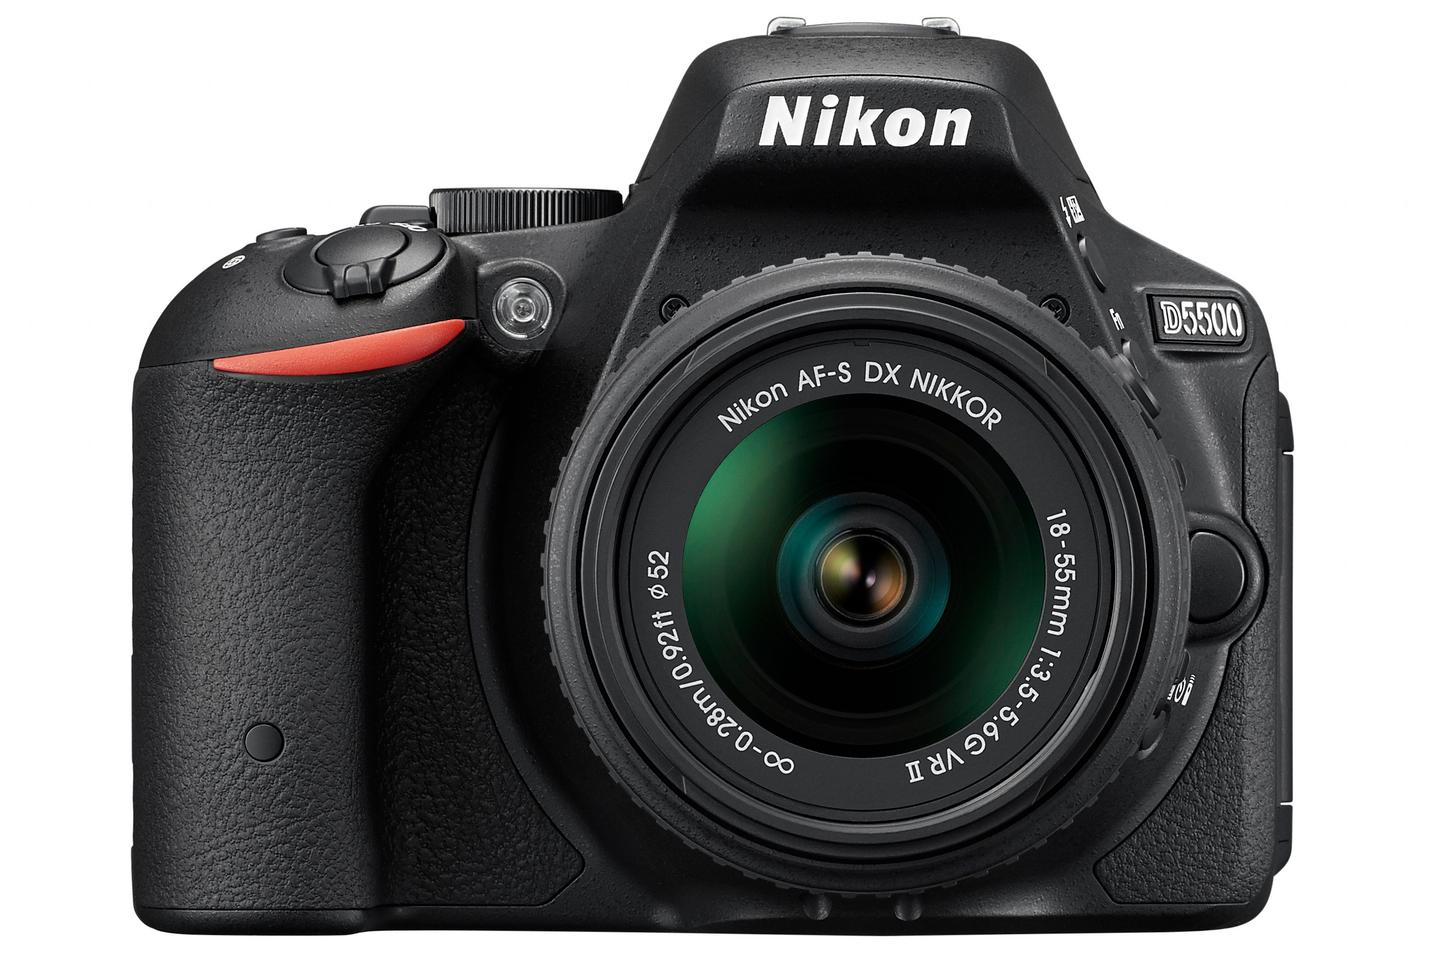 The Nikon D5500 uses built-in Wi-Fi for easy sharing to compatible devices